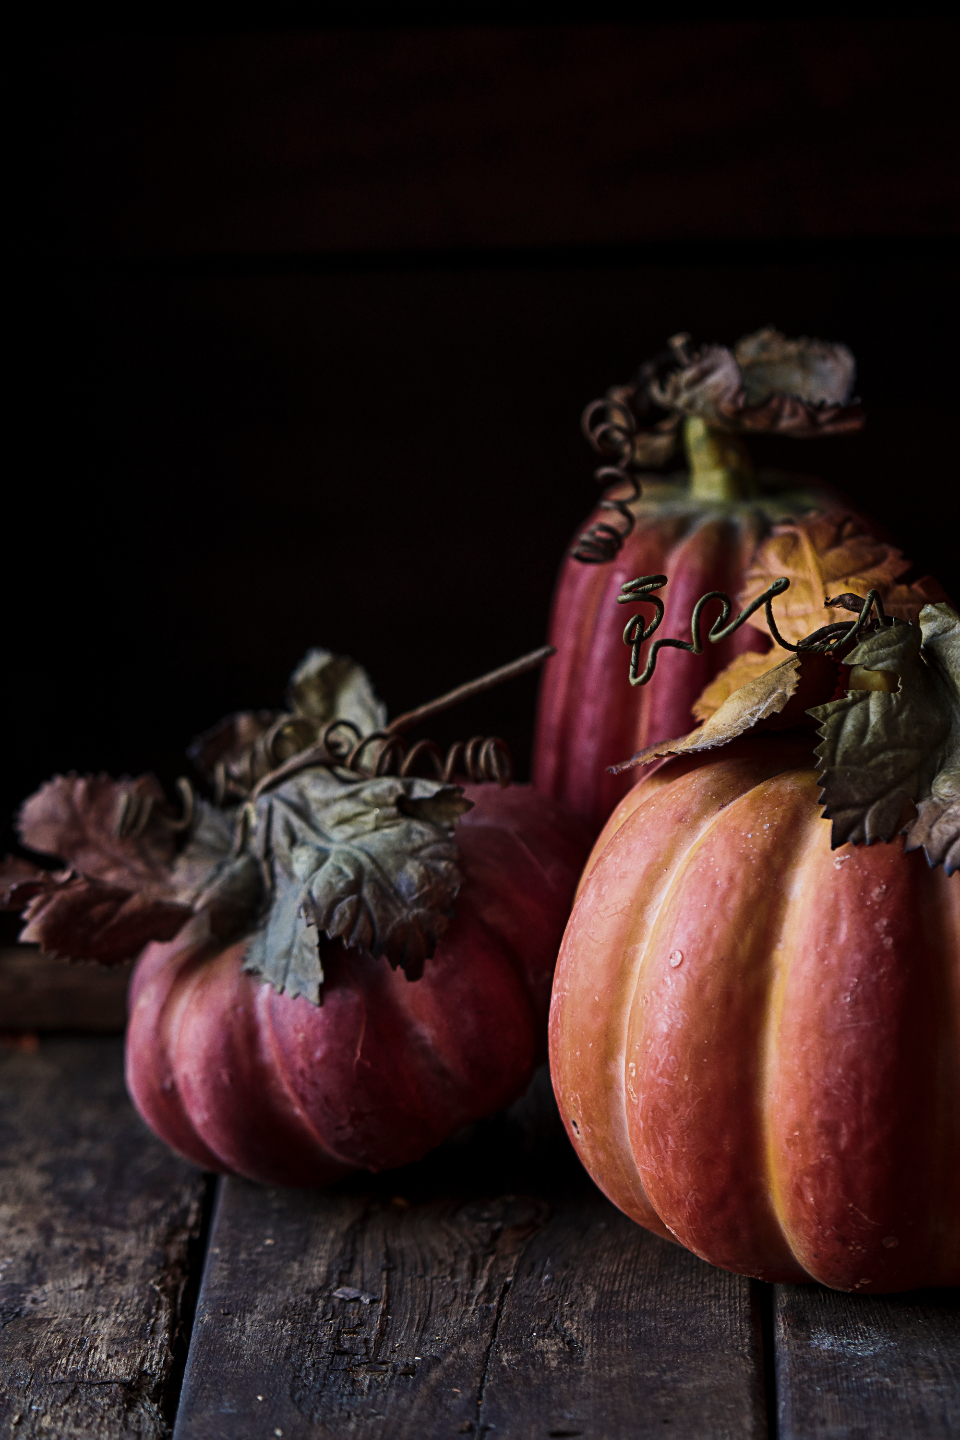 Free stock photo of fall pumpkins